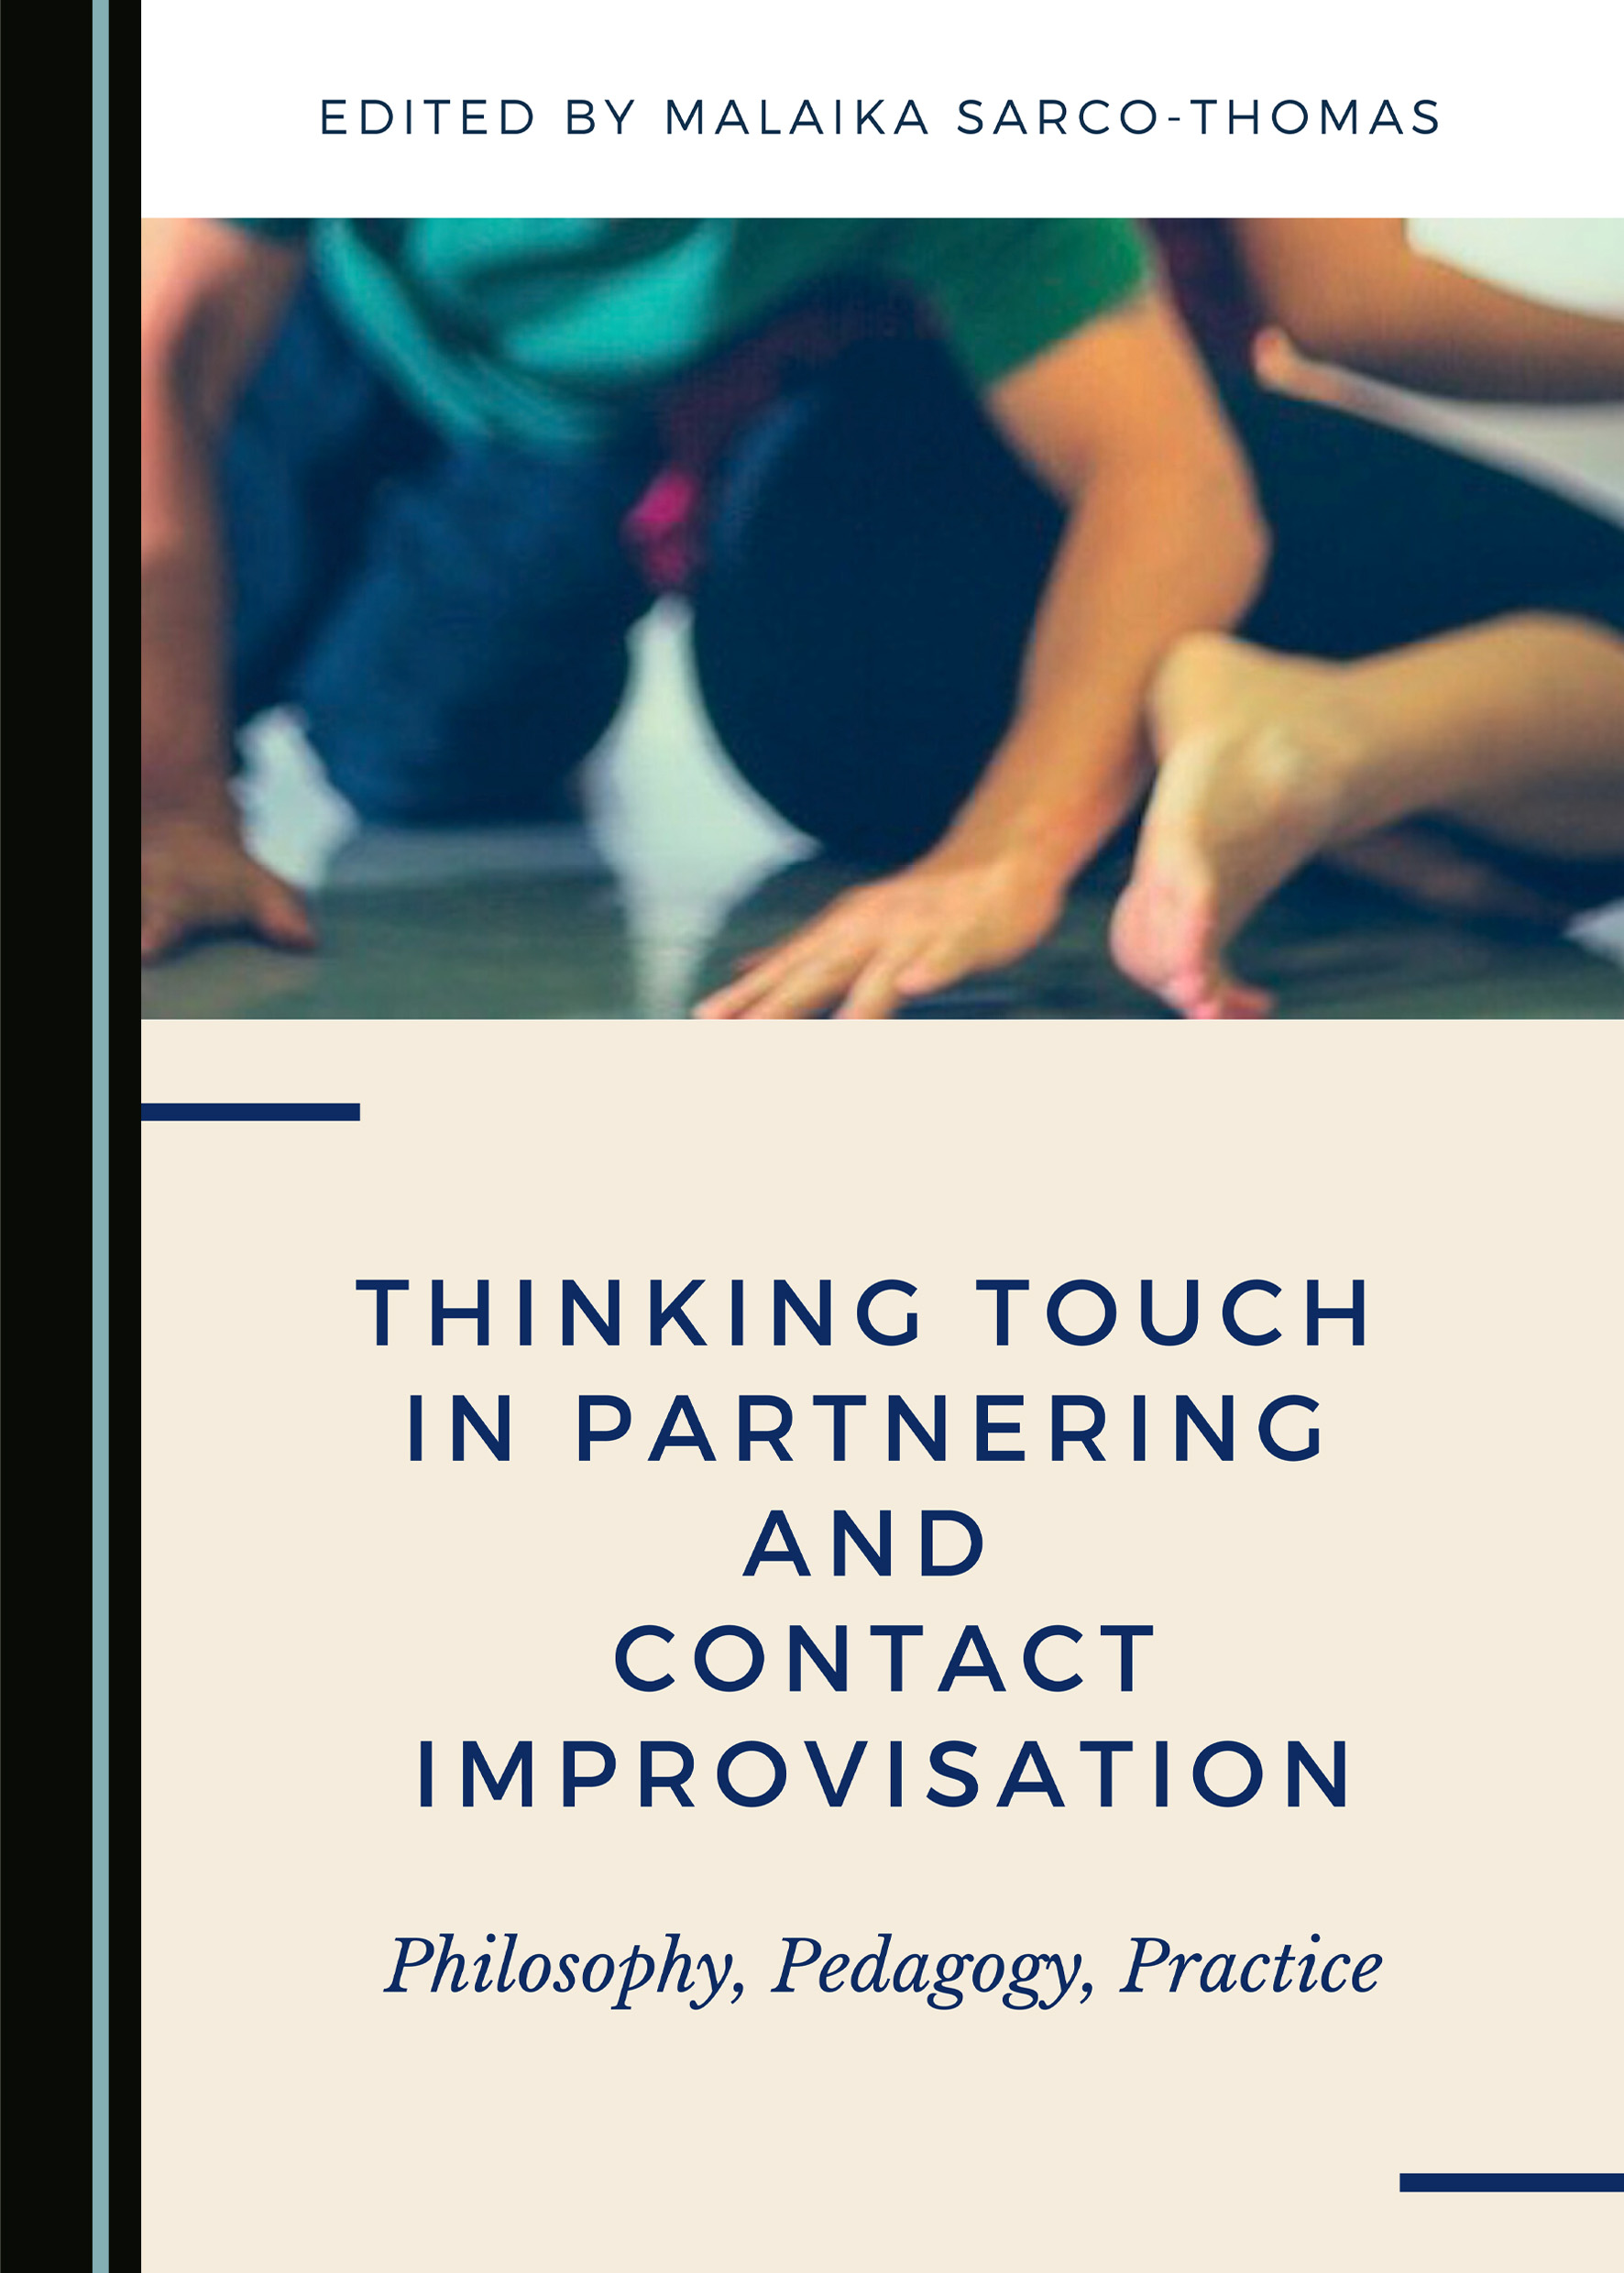 Thinking Touch in Partnering and Contact Improvisation: Philosophy, Pedagogy, Practice